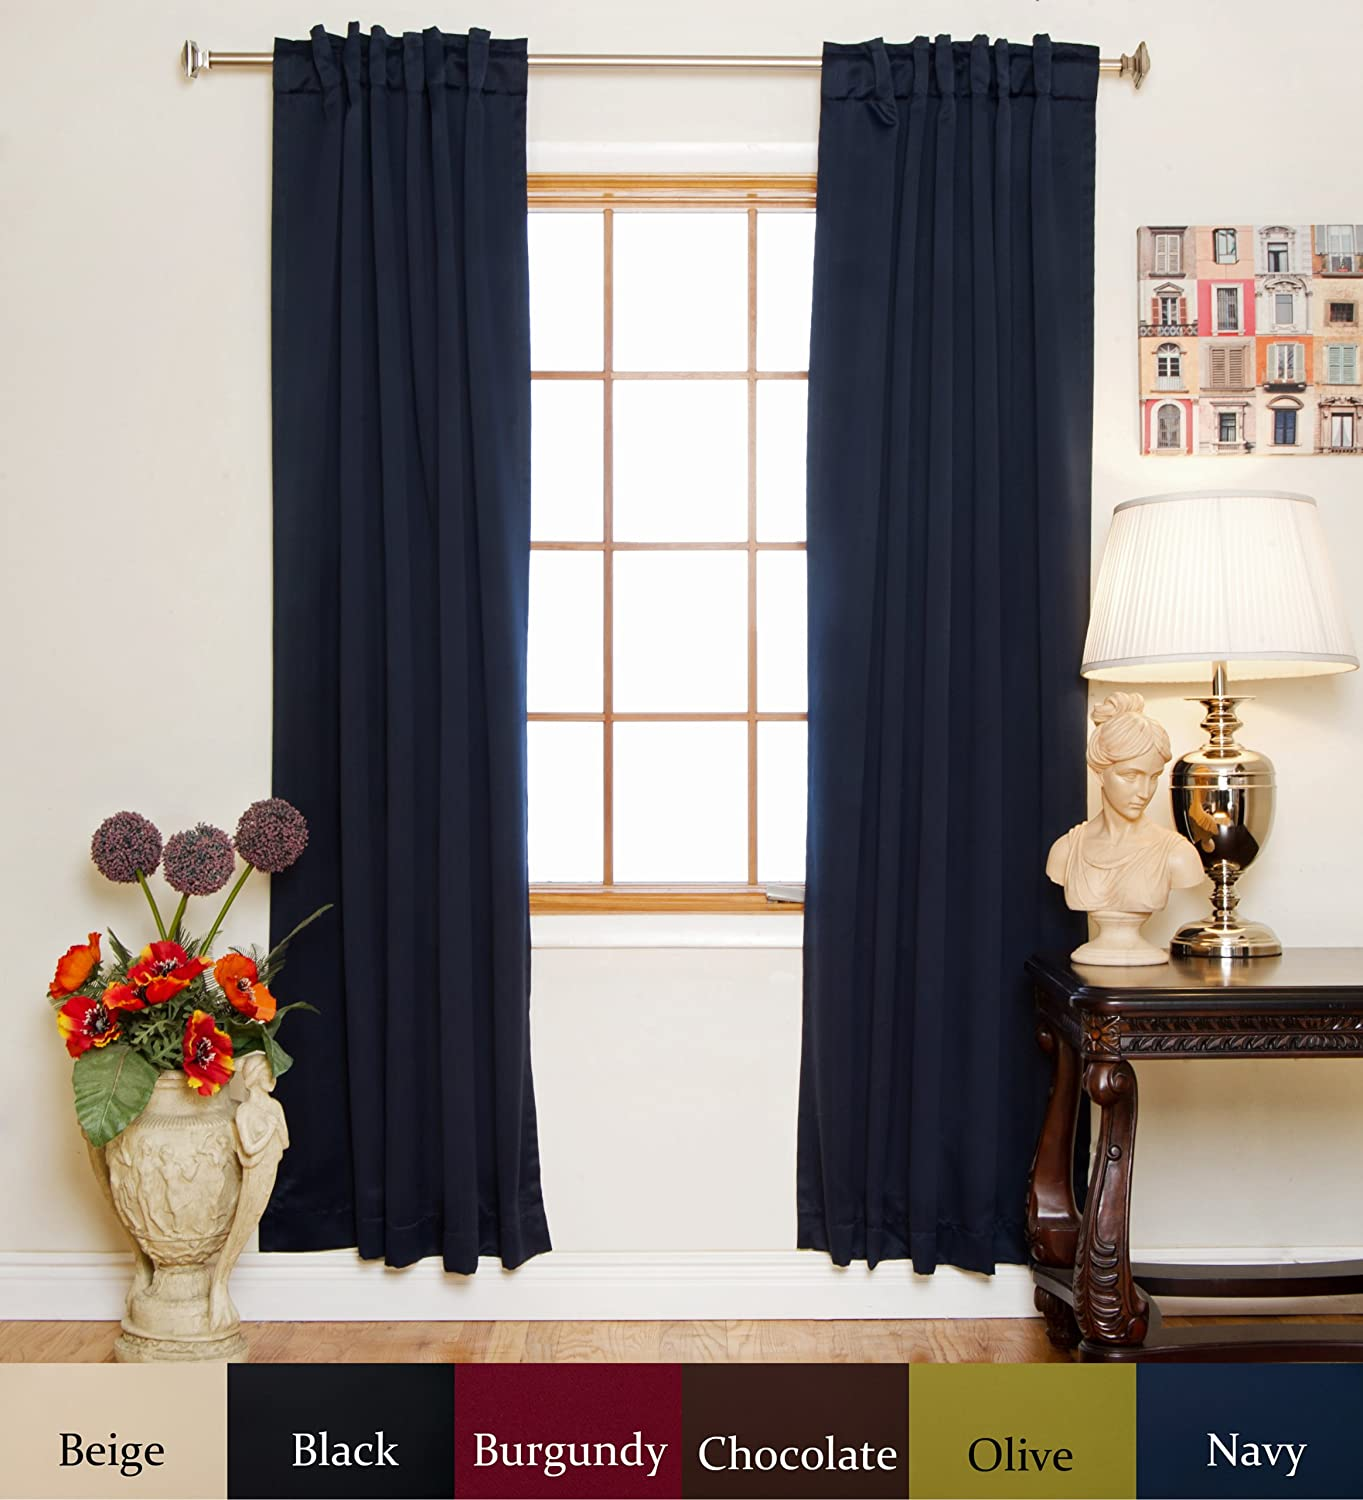 inch deconovo curtain lightayey window curtains thermaly solid photos of max panels com studio amazon set length room darkening light dreaded inspirations full grey size drapes